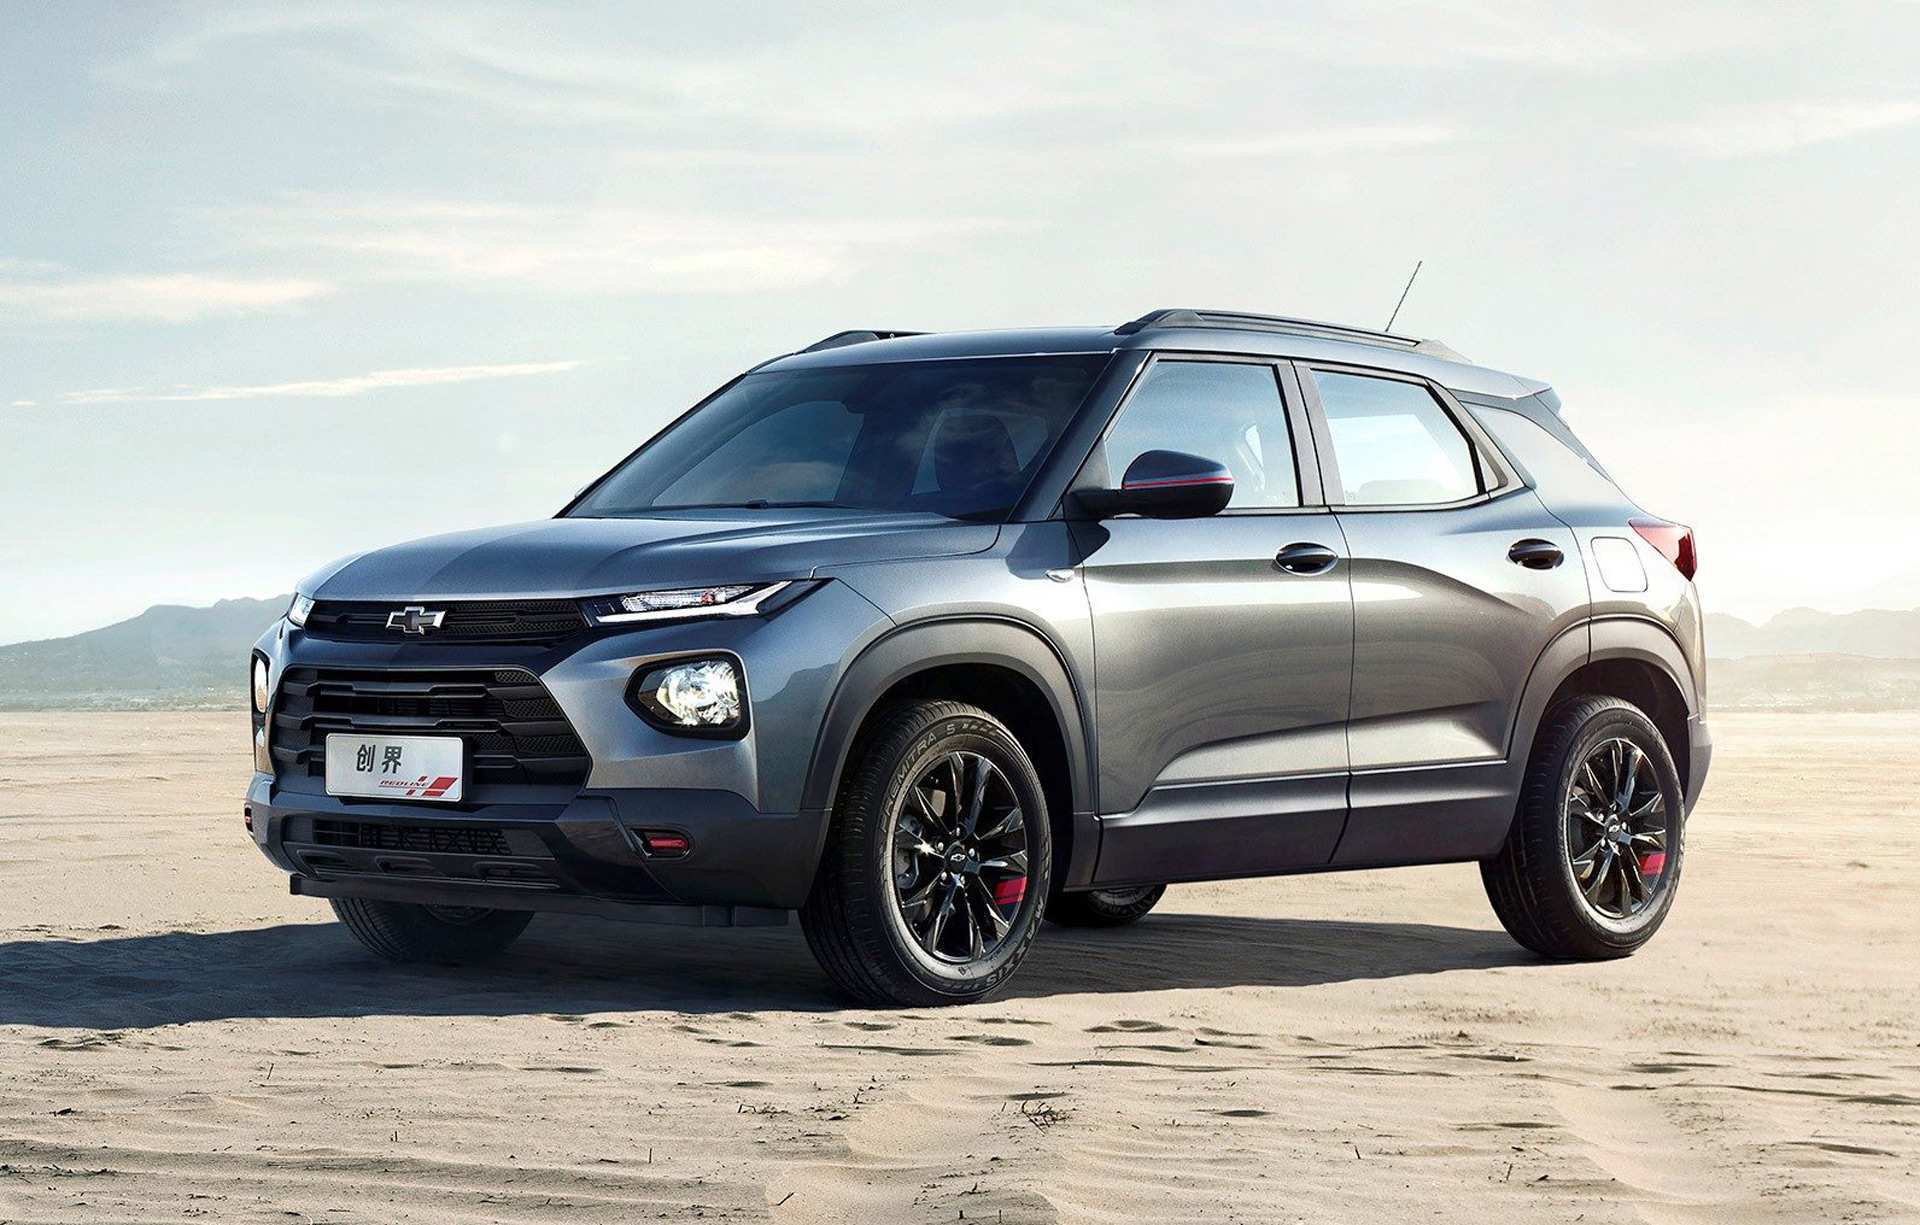 40 The 2020 Chevrolet Trailblazer Ss Prices